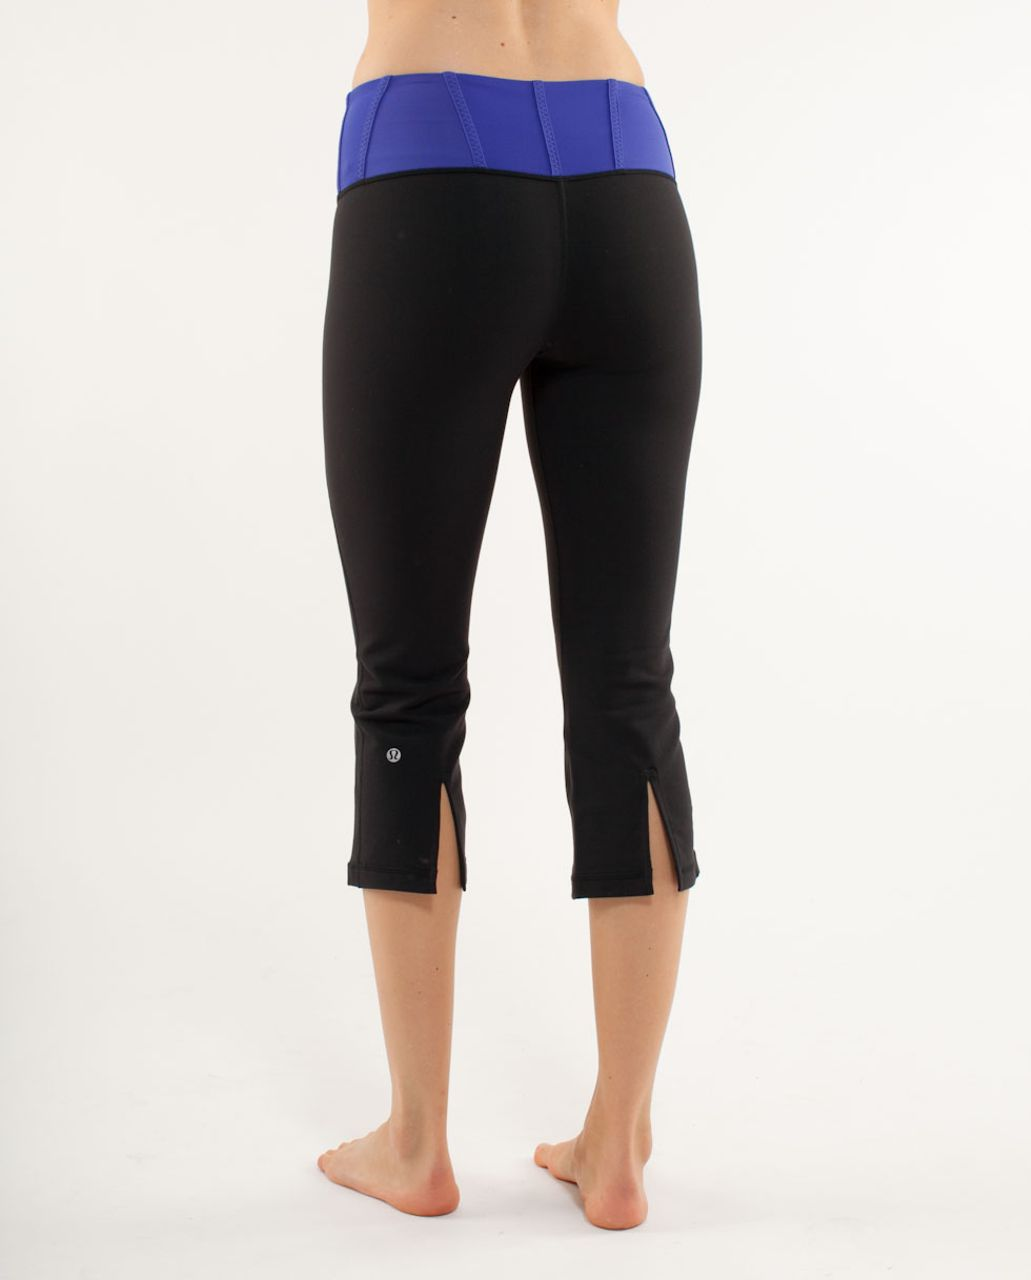 Lululemon Tadasana Slit Crop - Black /  Pigment Blue